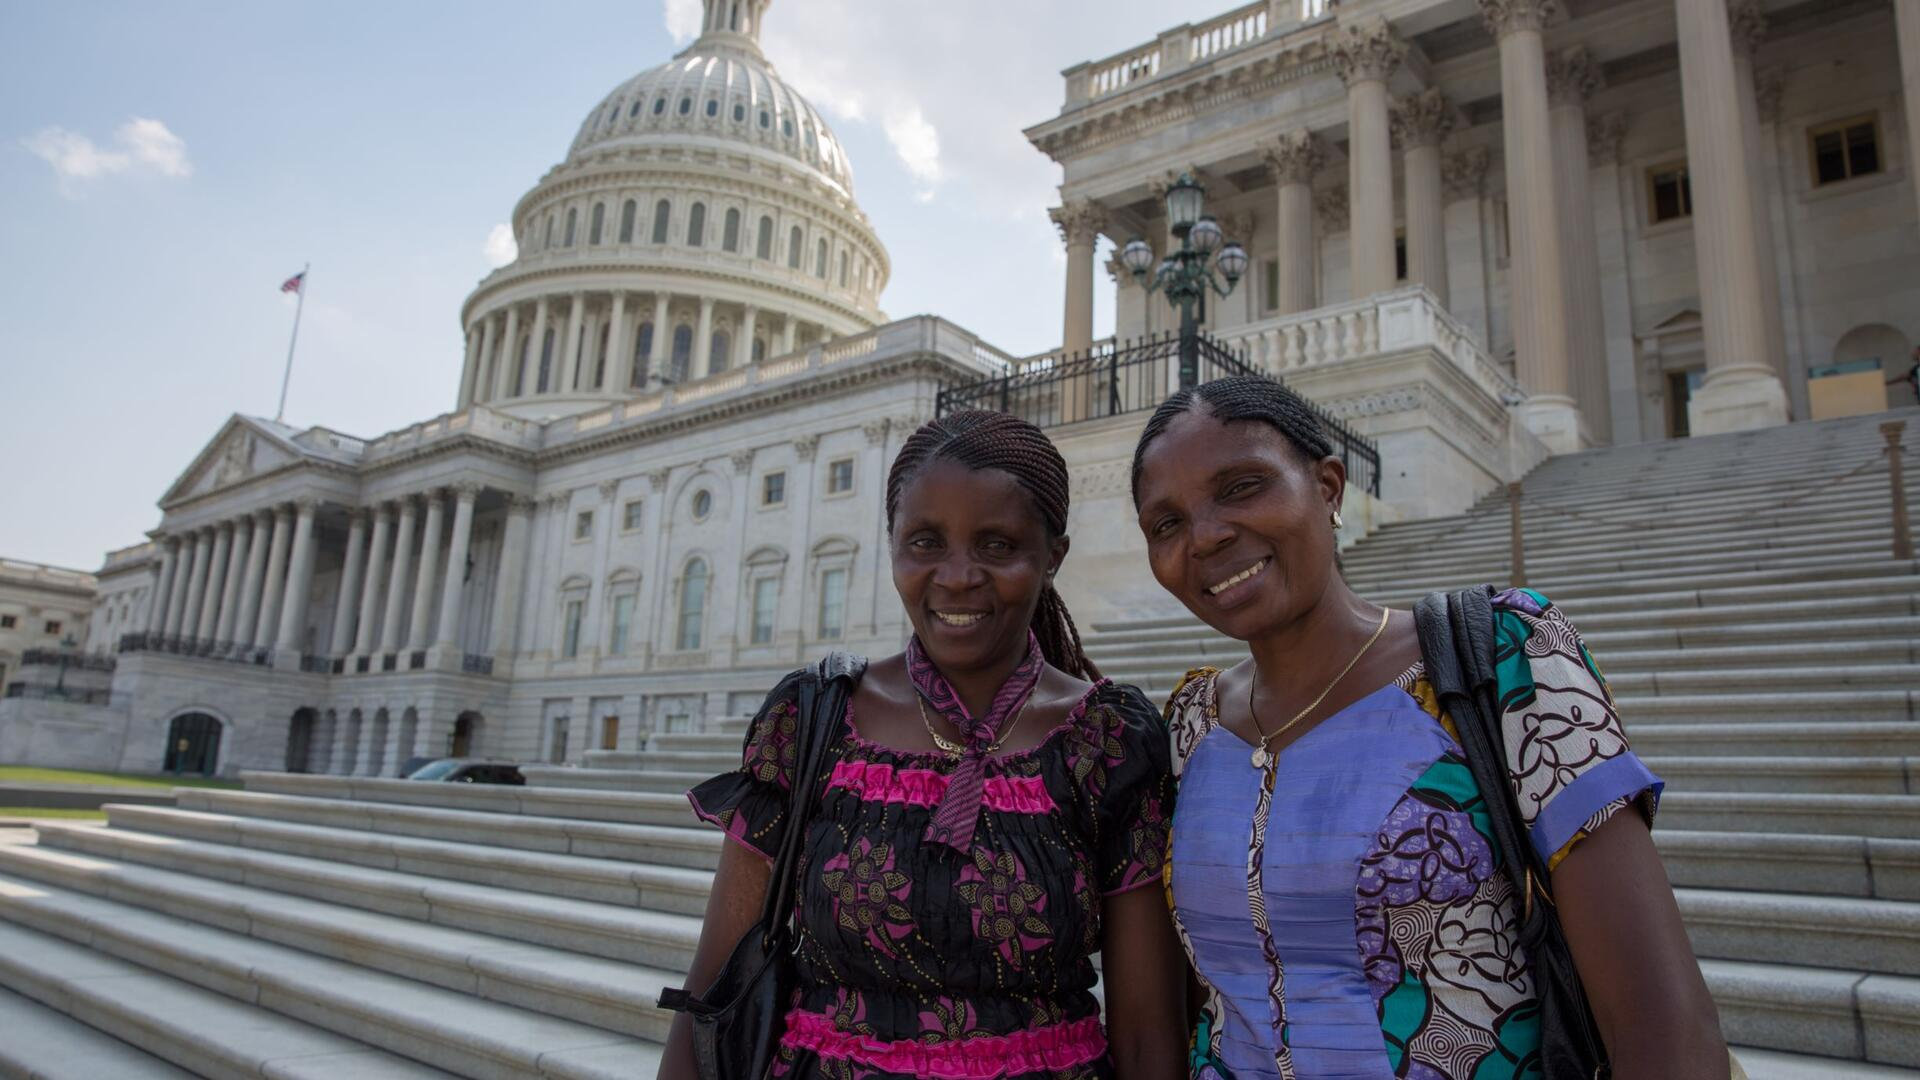 Two female women's rights activists from the Democratic Republic of Congo stand on the steps of the U.S. Capitol on a visit to Washington, DC in 2016